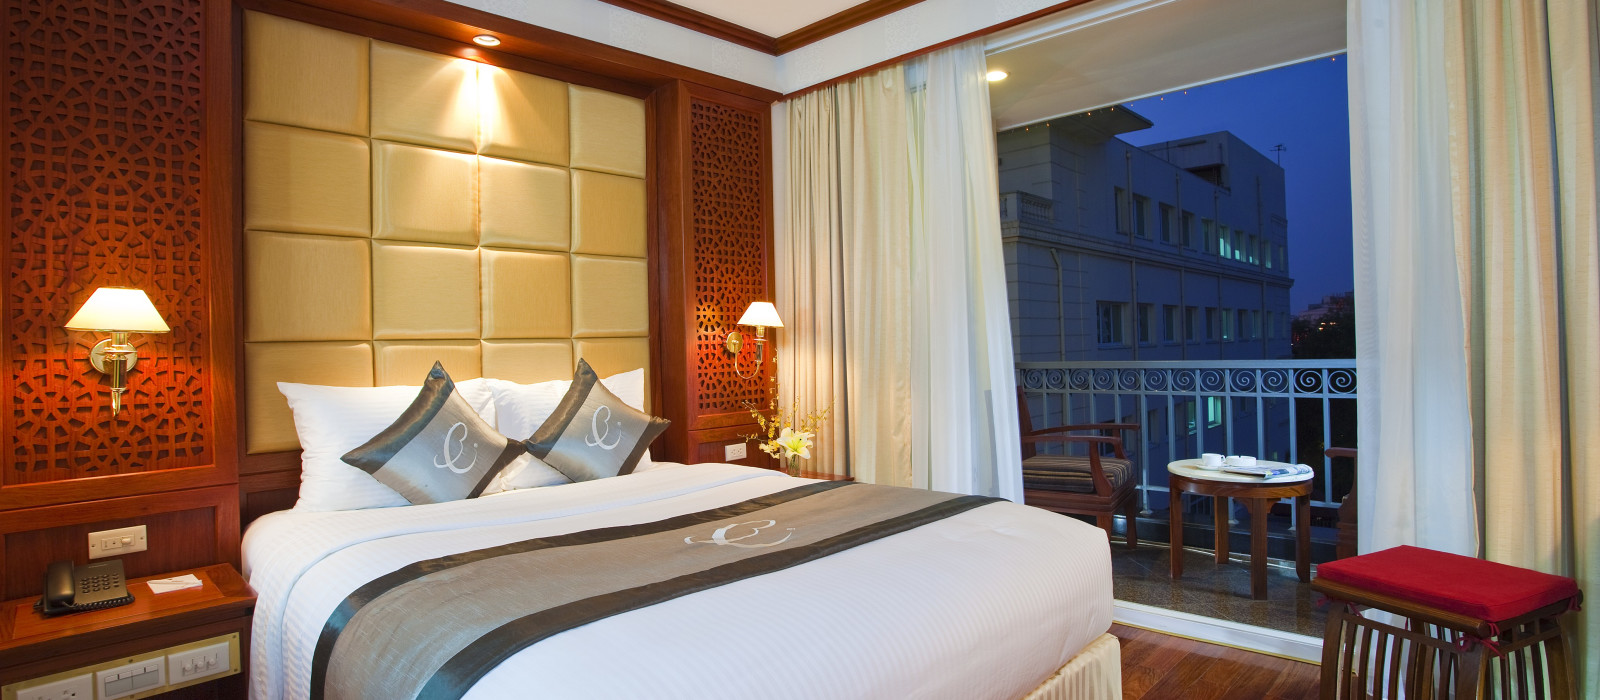 Hotel Conifer Boutique  Vietnam